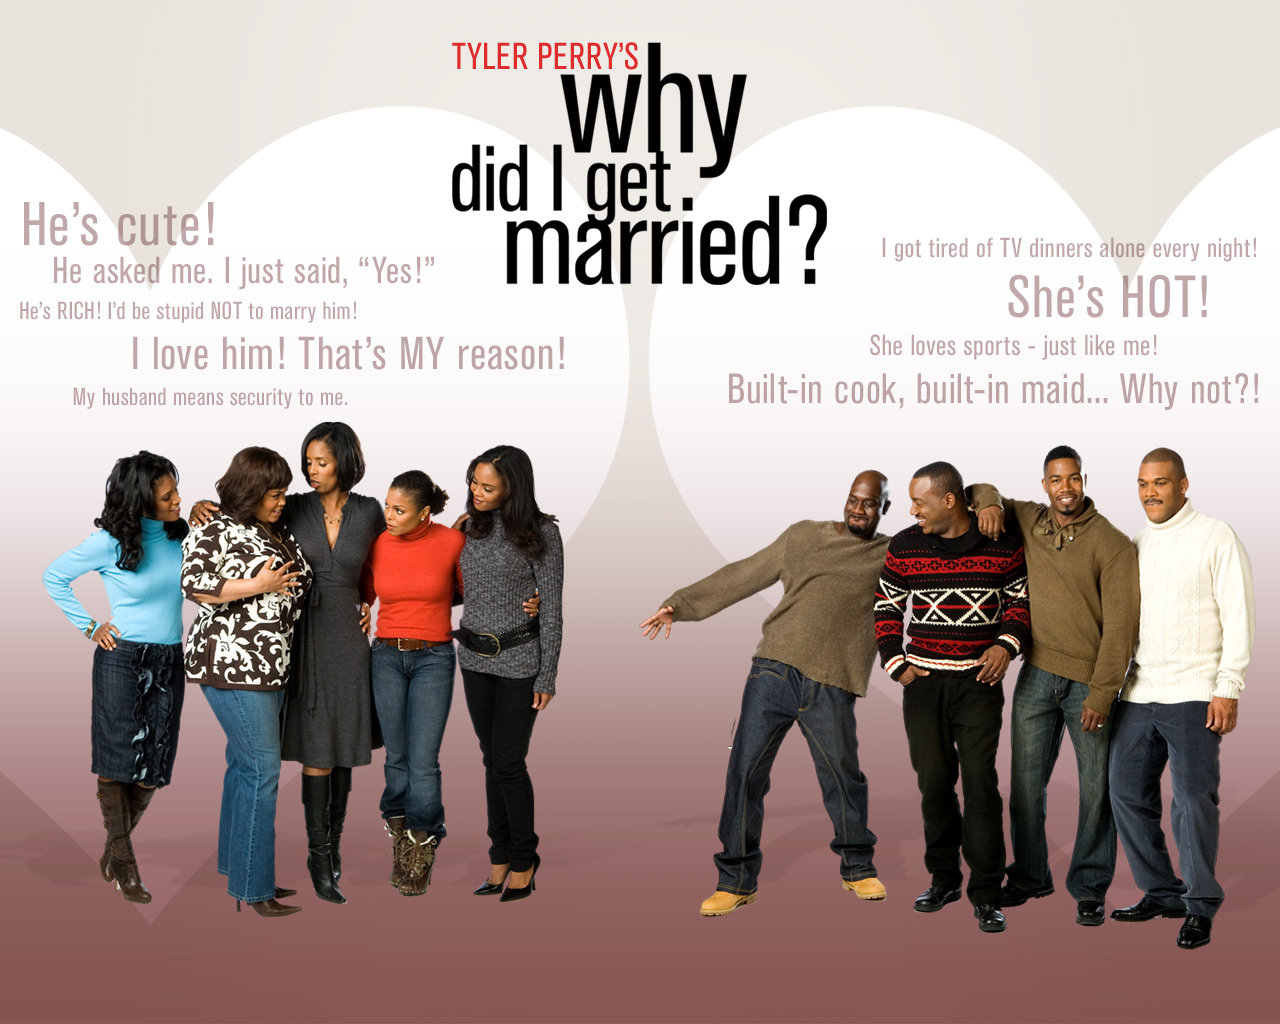 http://4.bp.blogspot.com/_lF7bfnOxEls/S8U8q8lJBqI/AAAAAAAAAgc/ET9A3Ms87vg/s1600/Why_Did_I_Get_Married-%21,_2007,_Tyler_Perry,_Janet_Jackson,_Jill_Scott.jpg